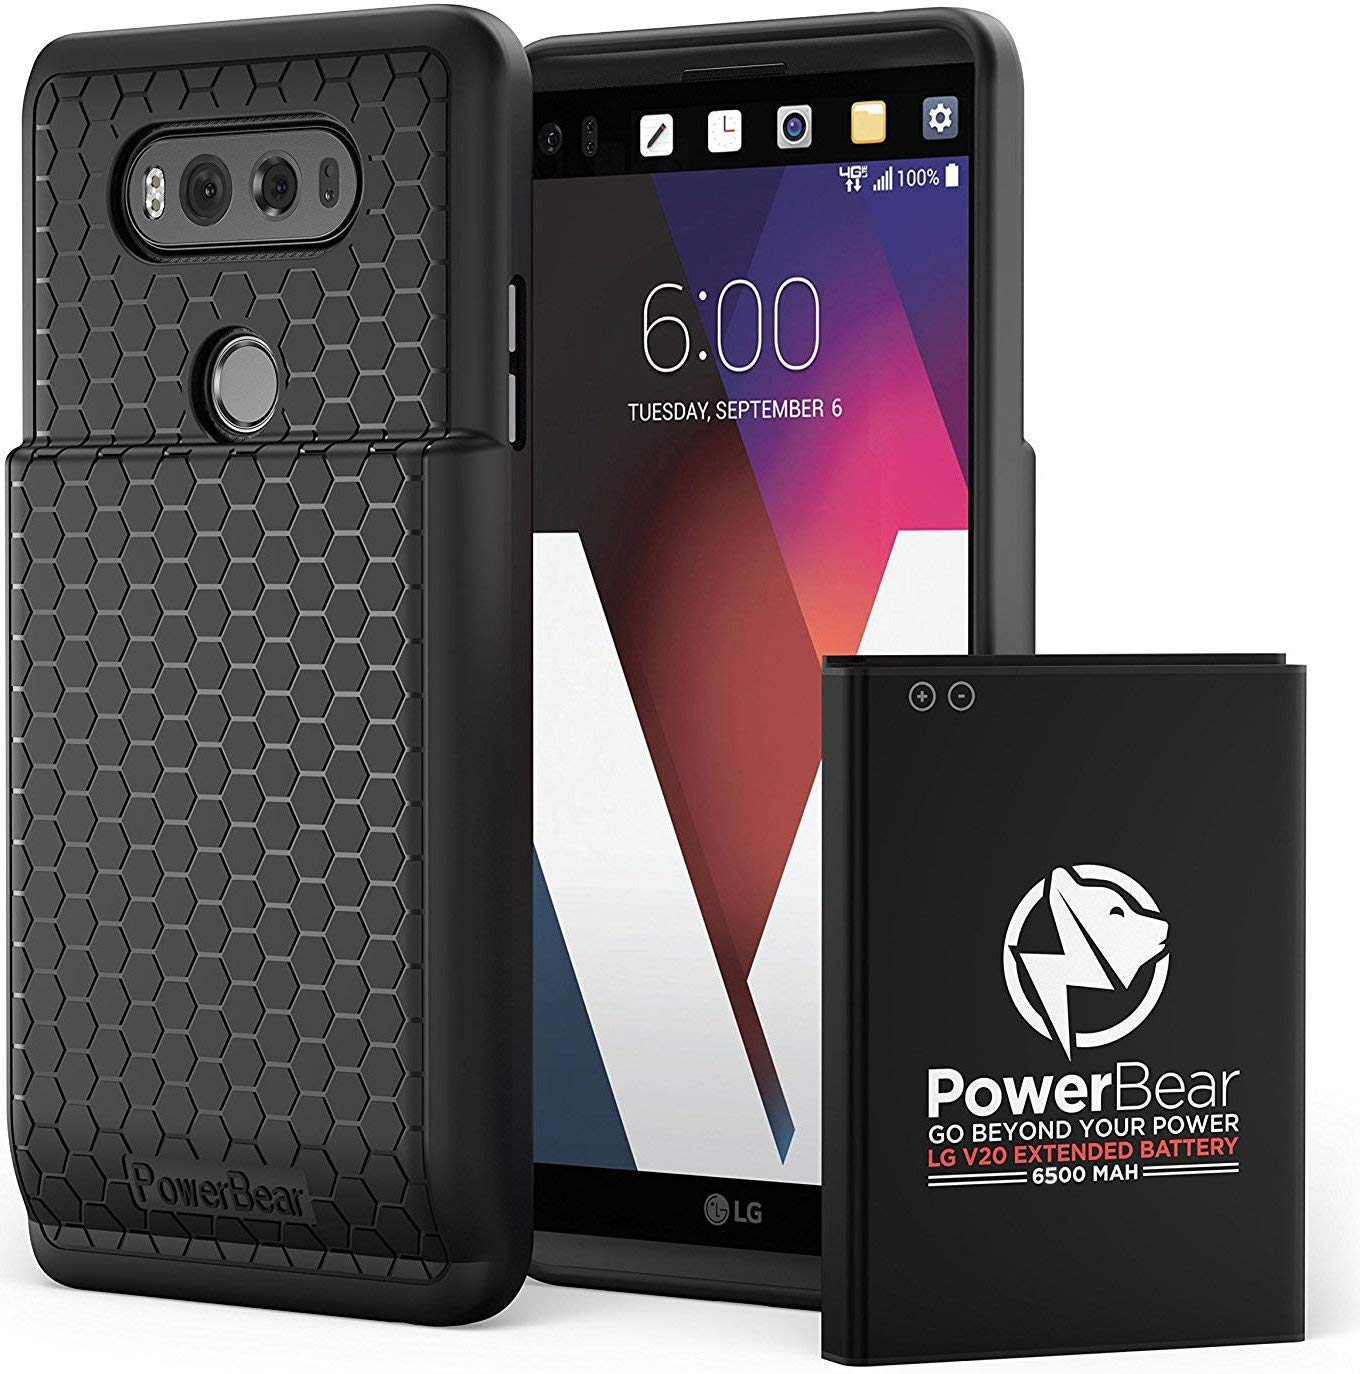 PowerBear LG V20 Extended Battery [6500 mAh] with Cover & Case [200% Battery] by PowerBear